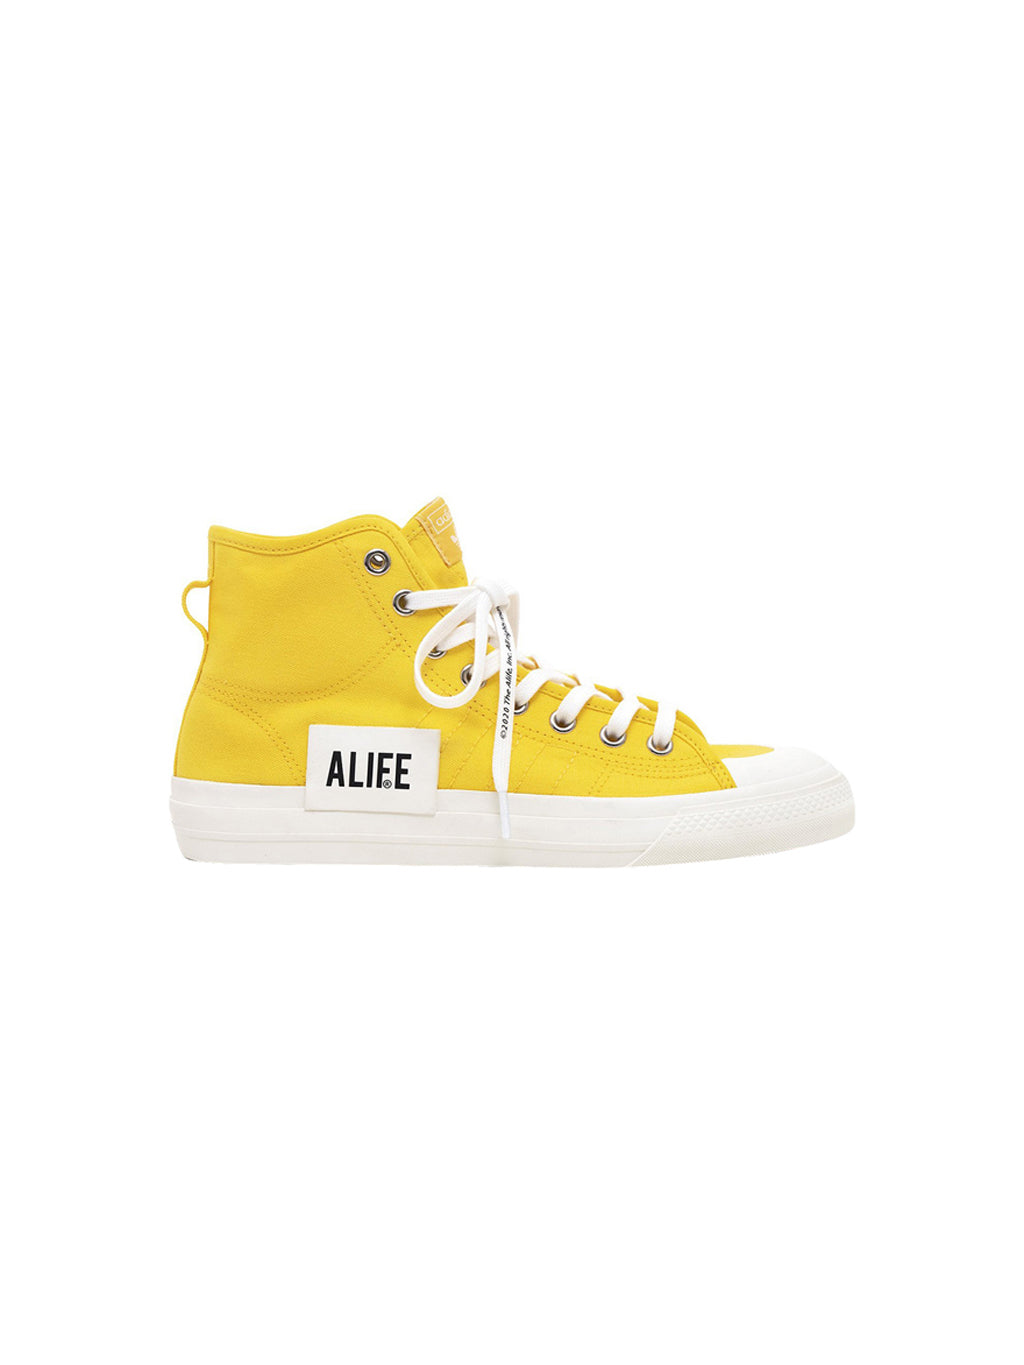 Yellow Alife Nizza Hi Top Sneakers